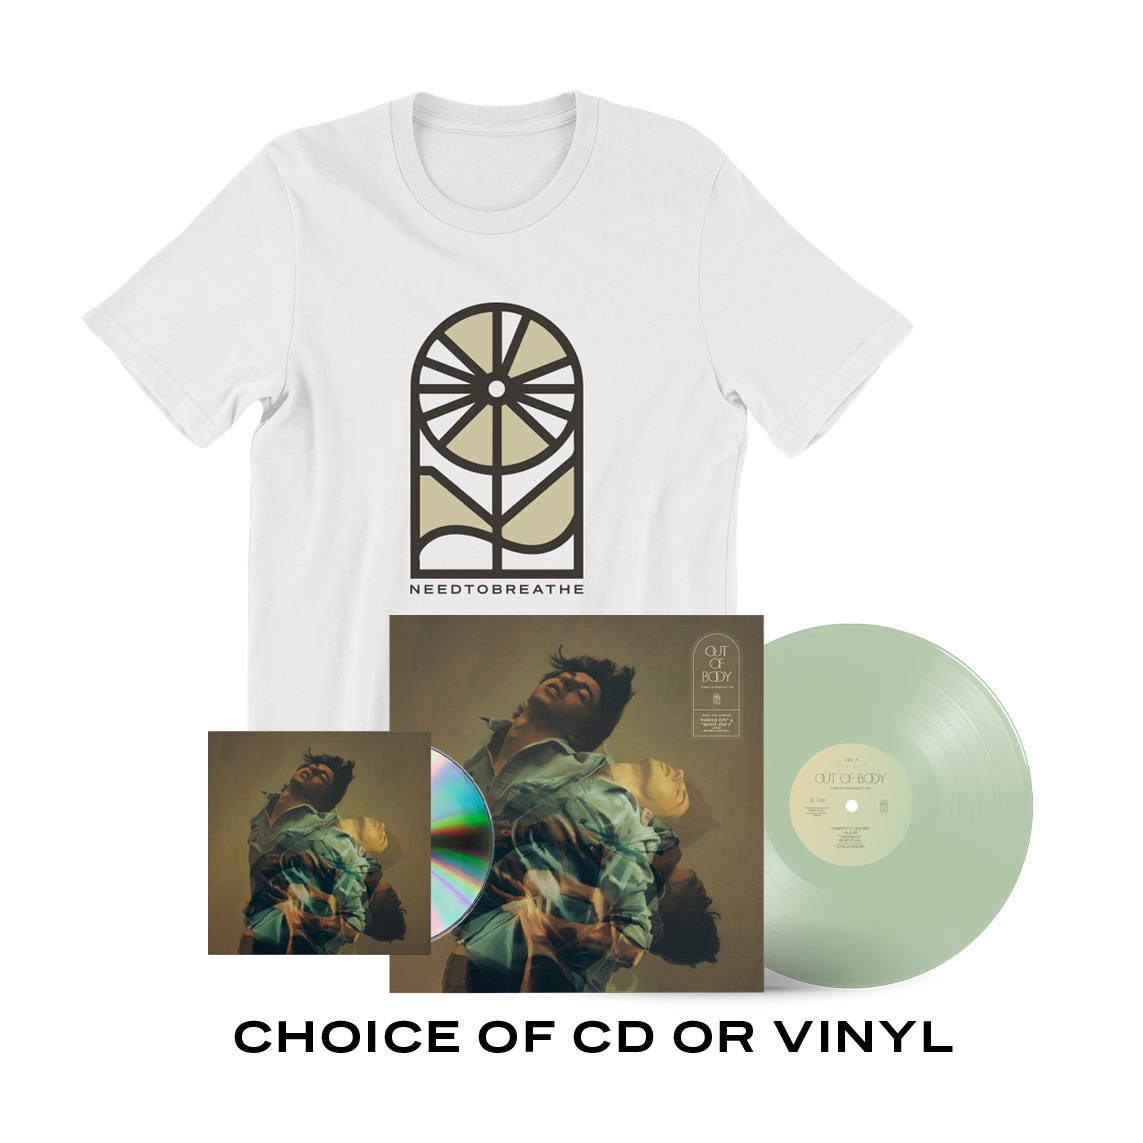 Out of Body T-Shirt Package Pre-Order